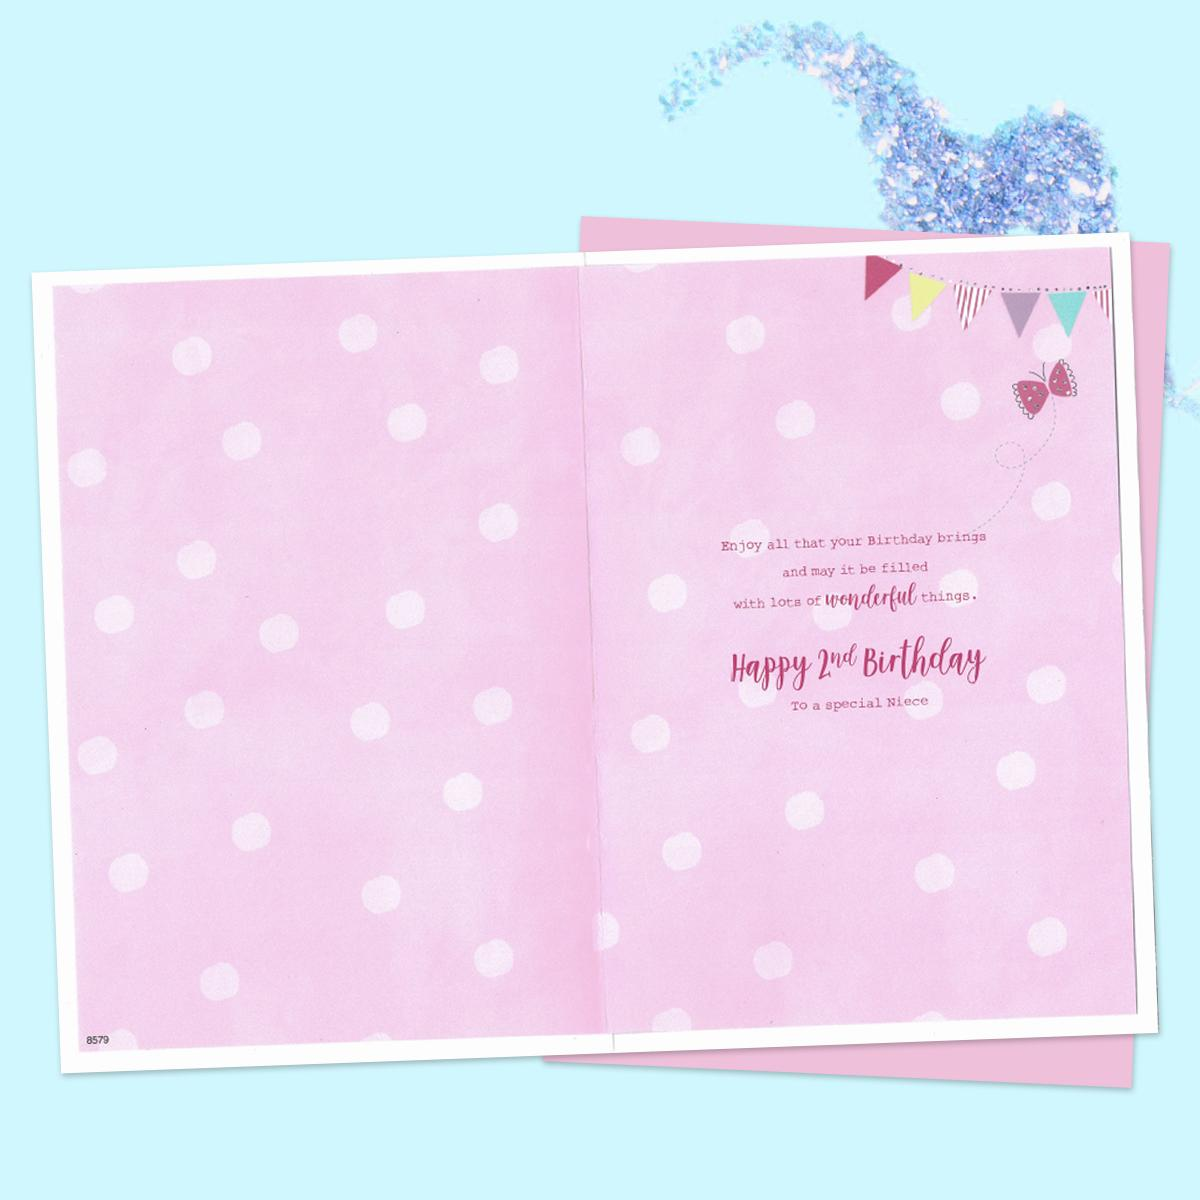 Niece Age 2 Birthday Card Alongside Its Pink Envelope